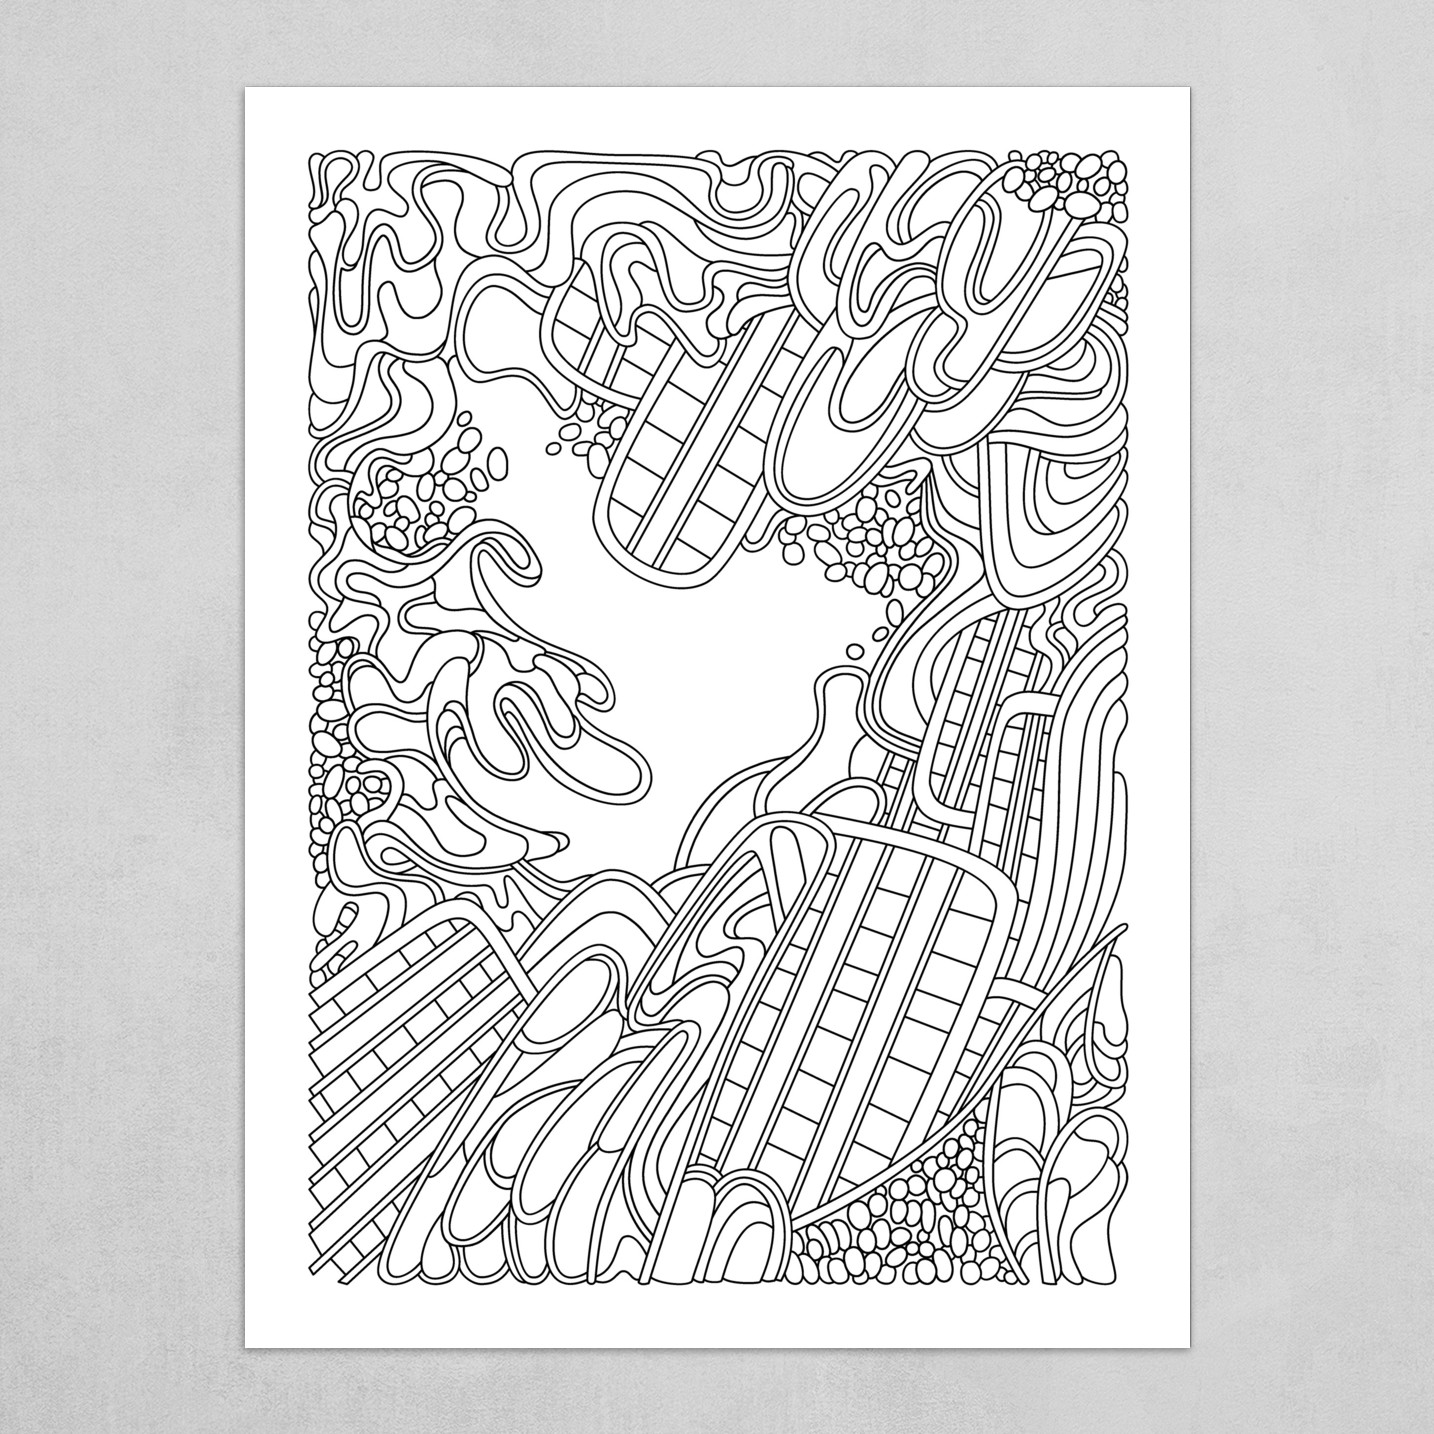 Wandering Abstract Line Art 36: Black & White